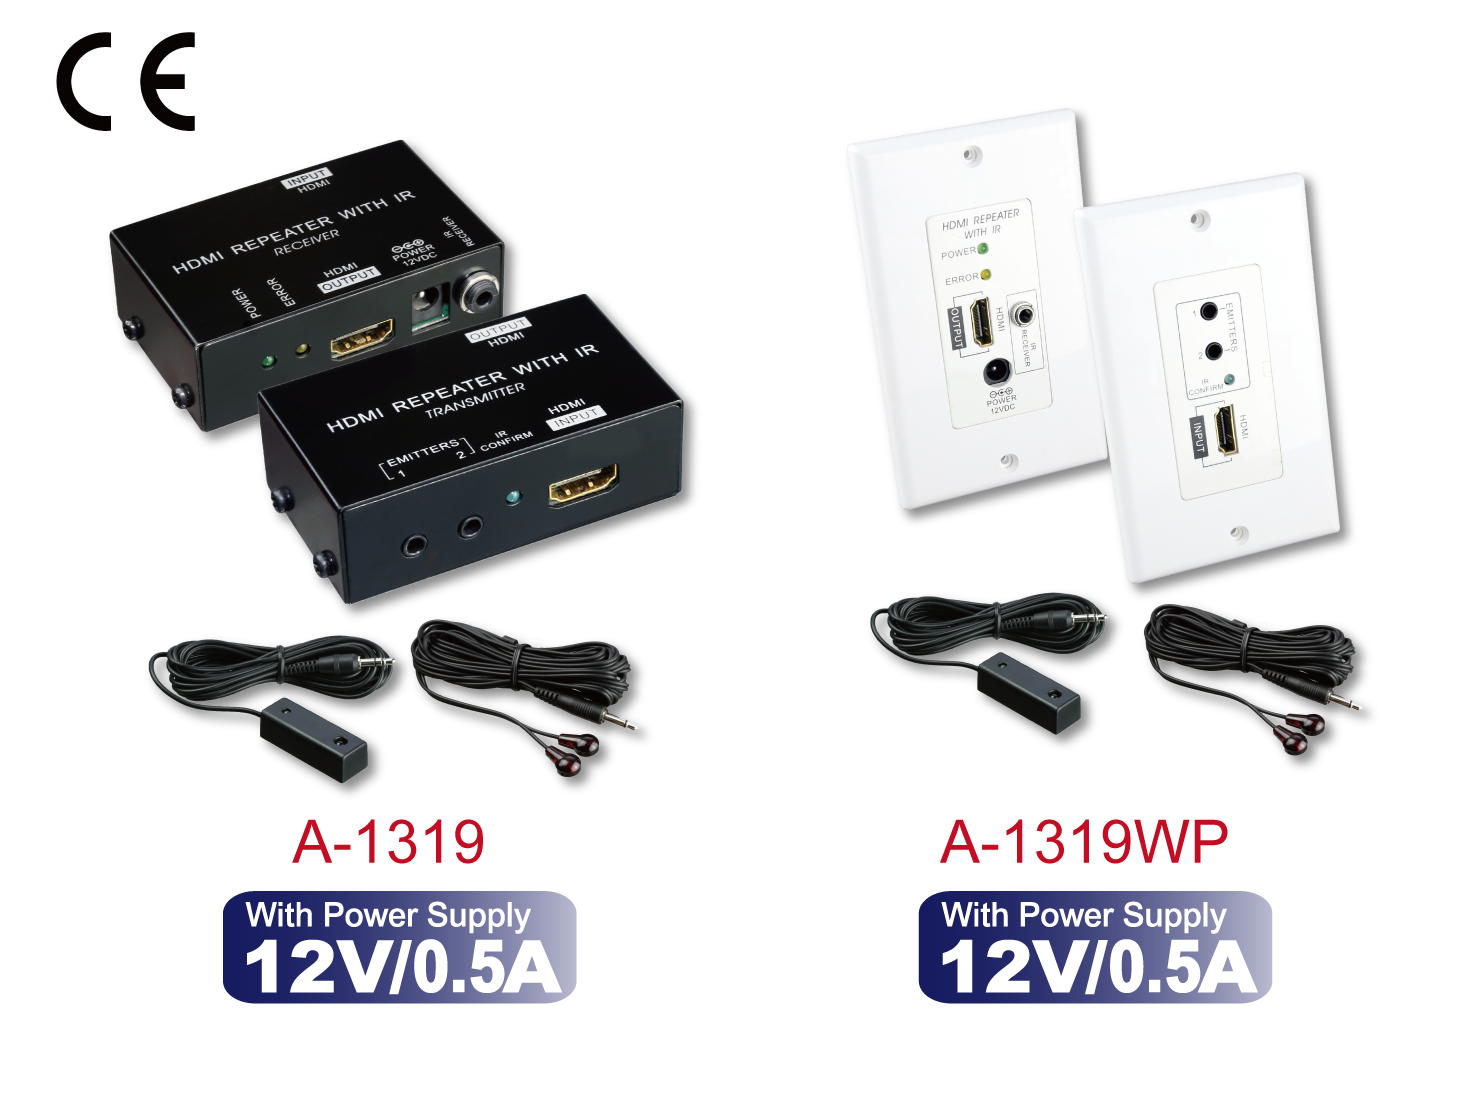 A-1319 / A-1319WP : HDMI Repeater with IR